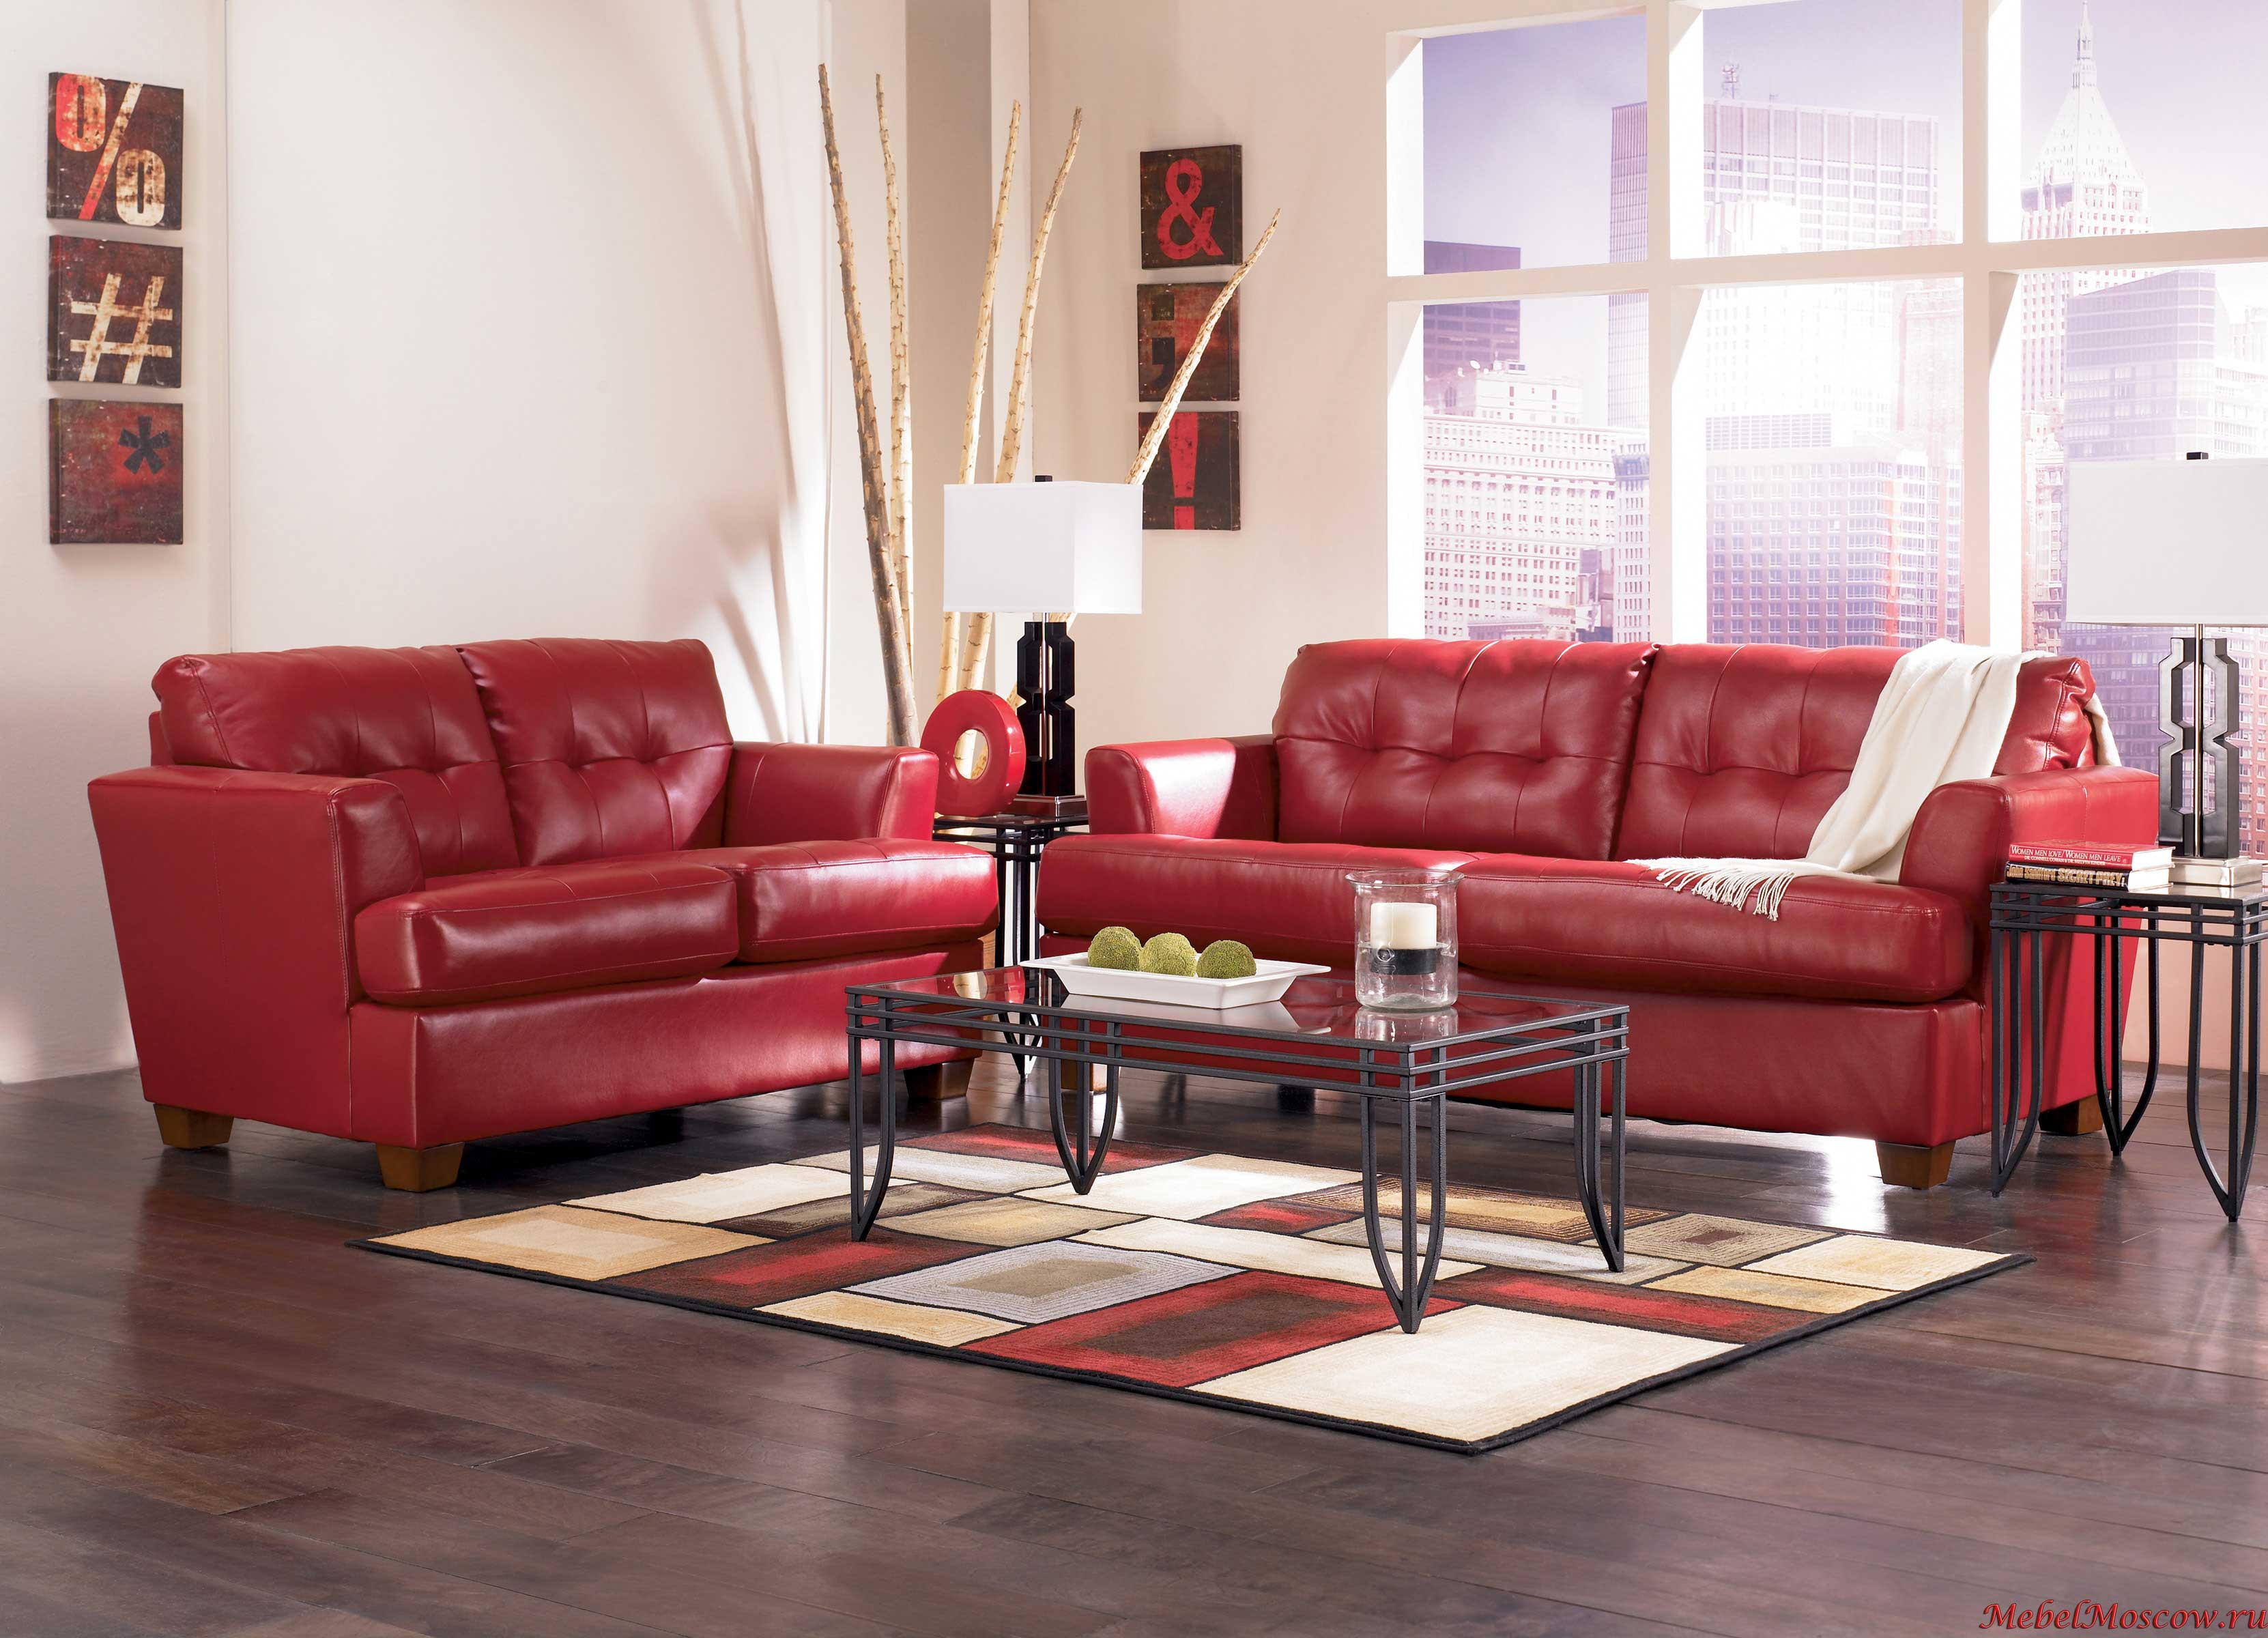 How to living room furniture large and beautiful photos for Living room furniture very